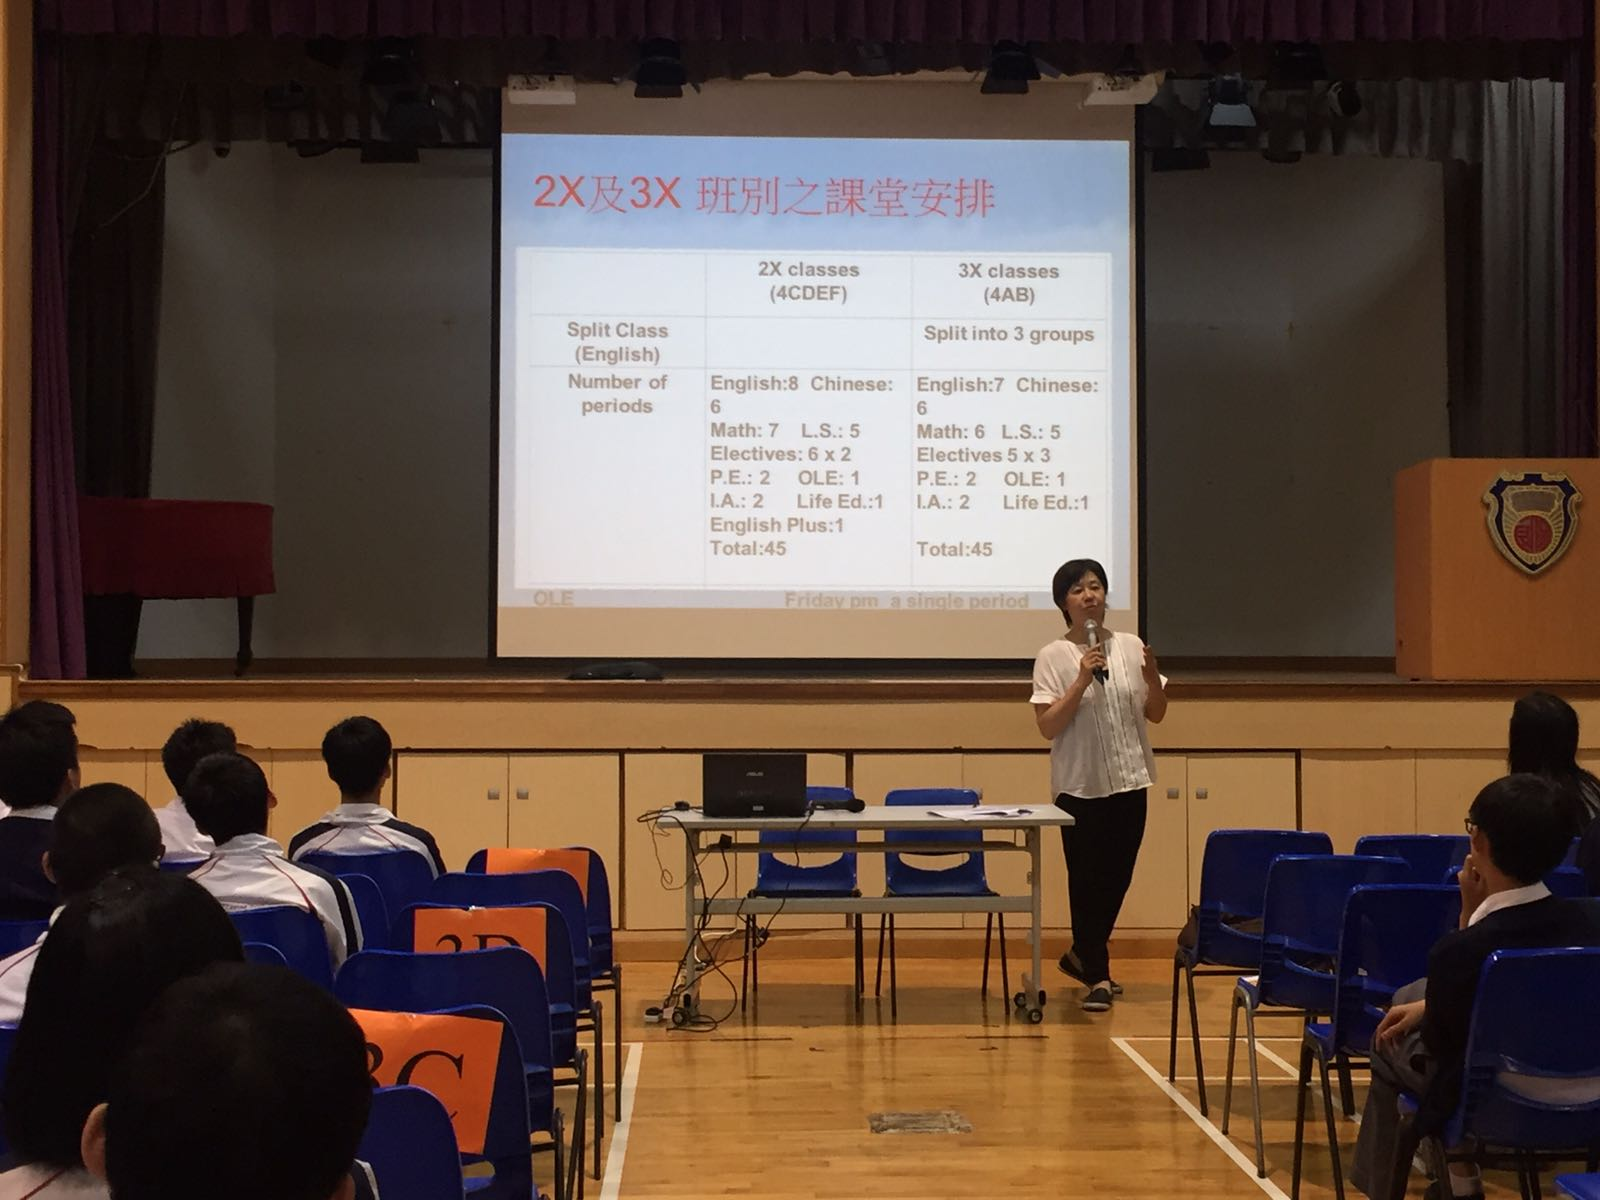 Ms Ng, the Vice-principal of SFC, is explaining the lesson arrangement for 2X and 3X combinations.